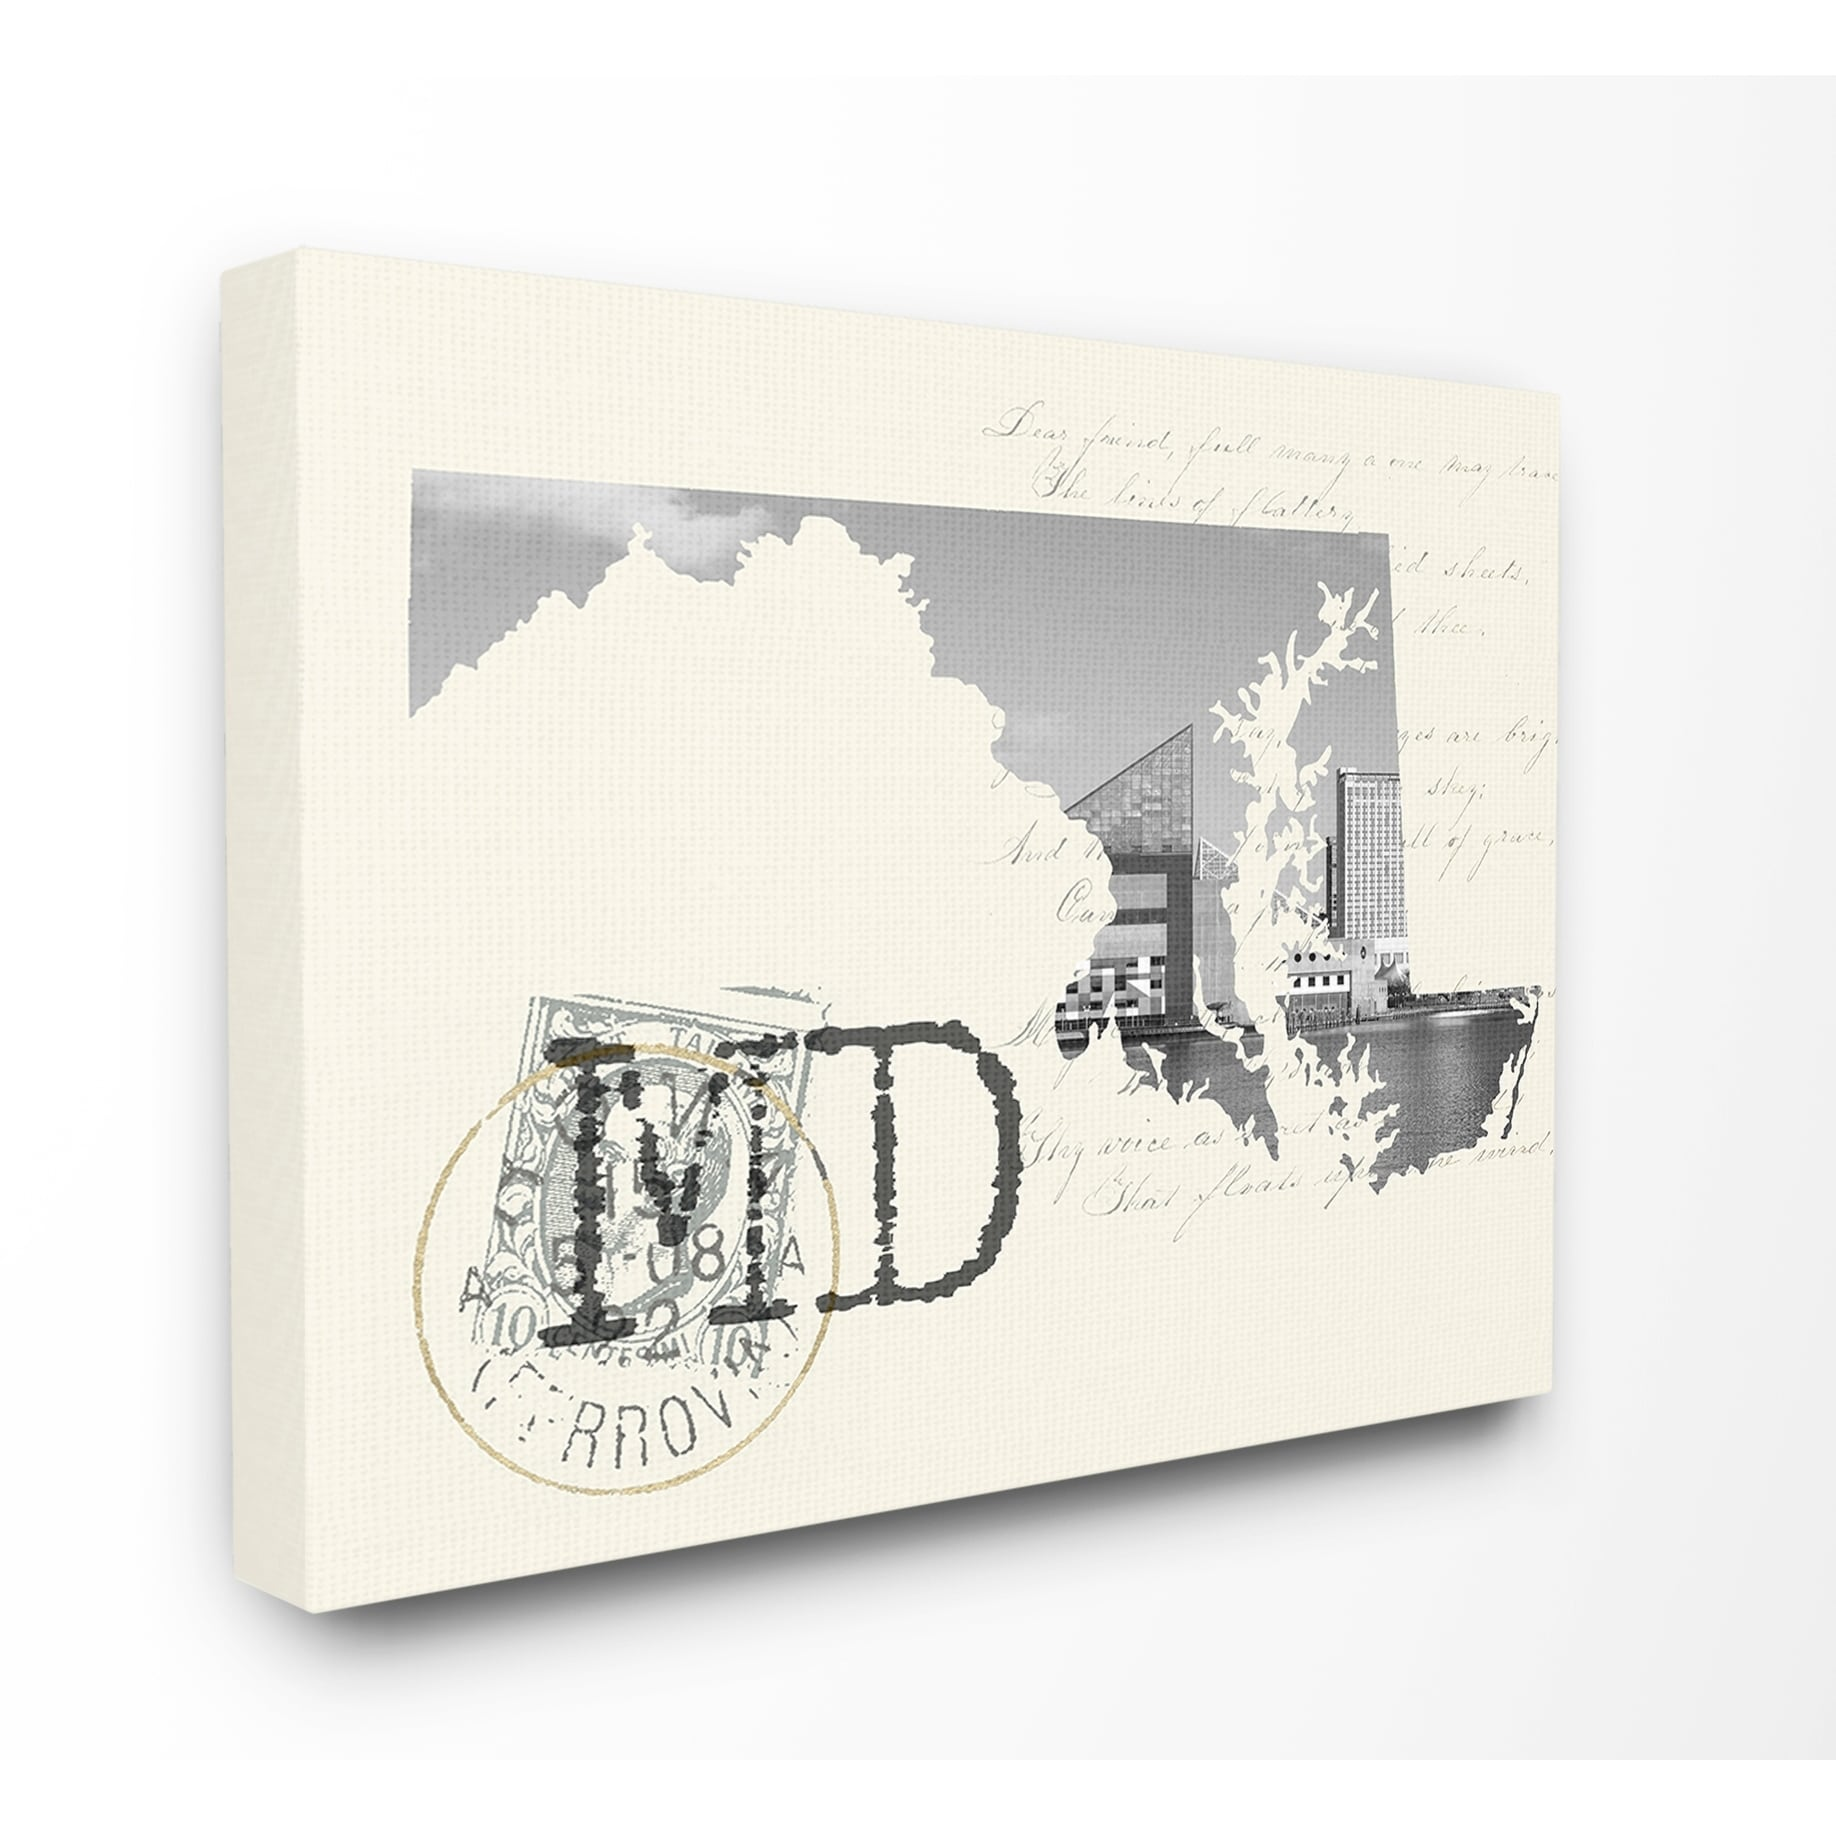 Details About The Stupell Home Decor Maryland Black And White Photograph On Cream Paper